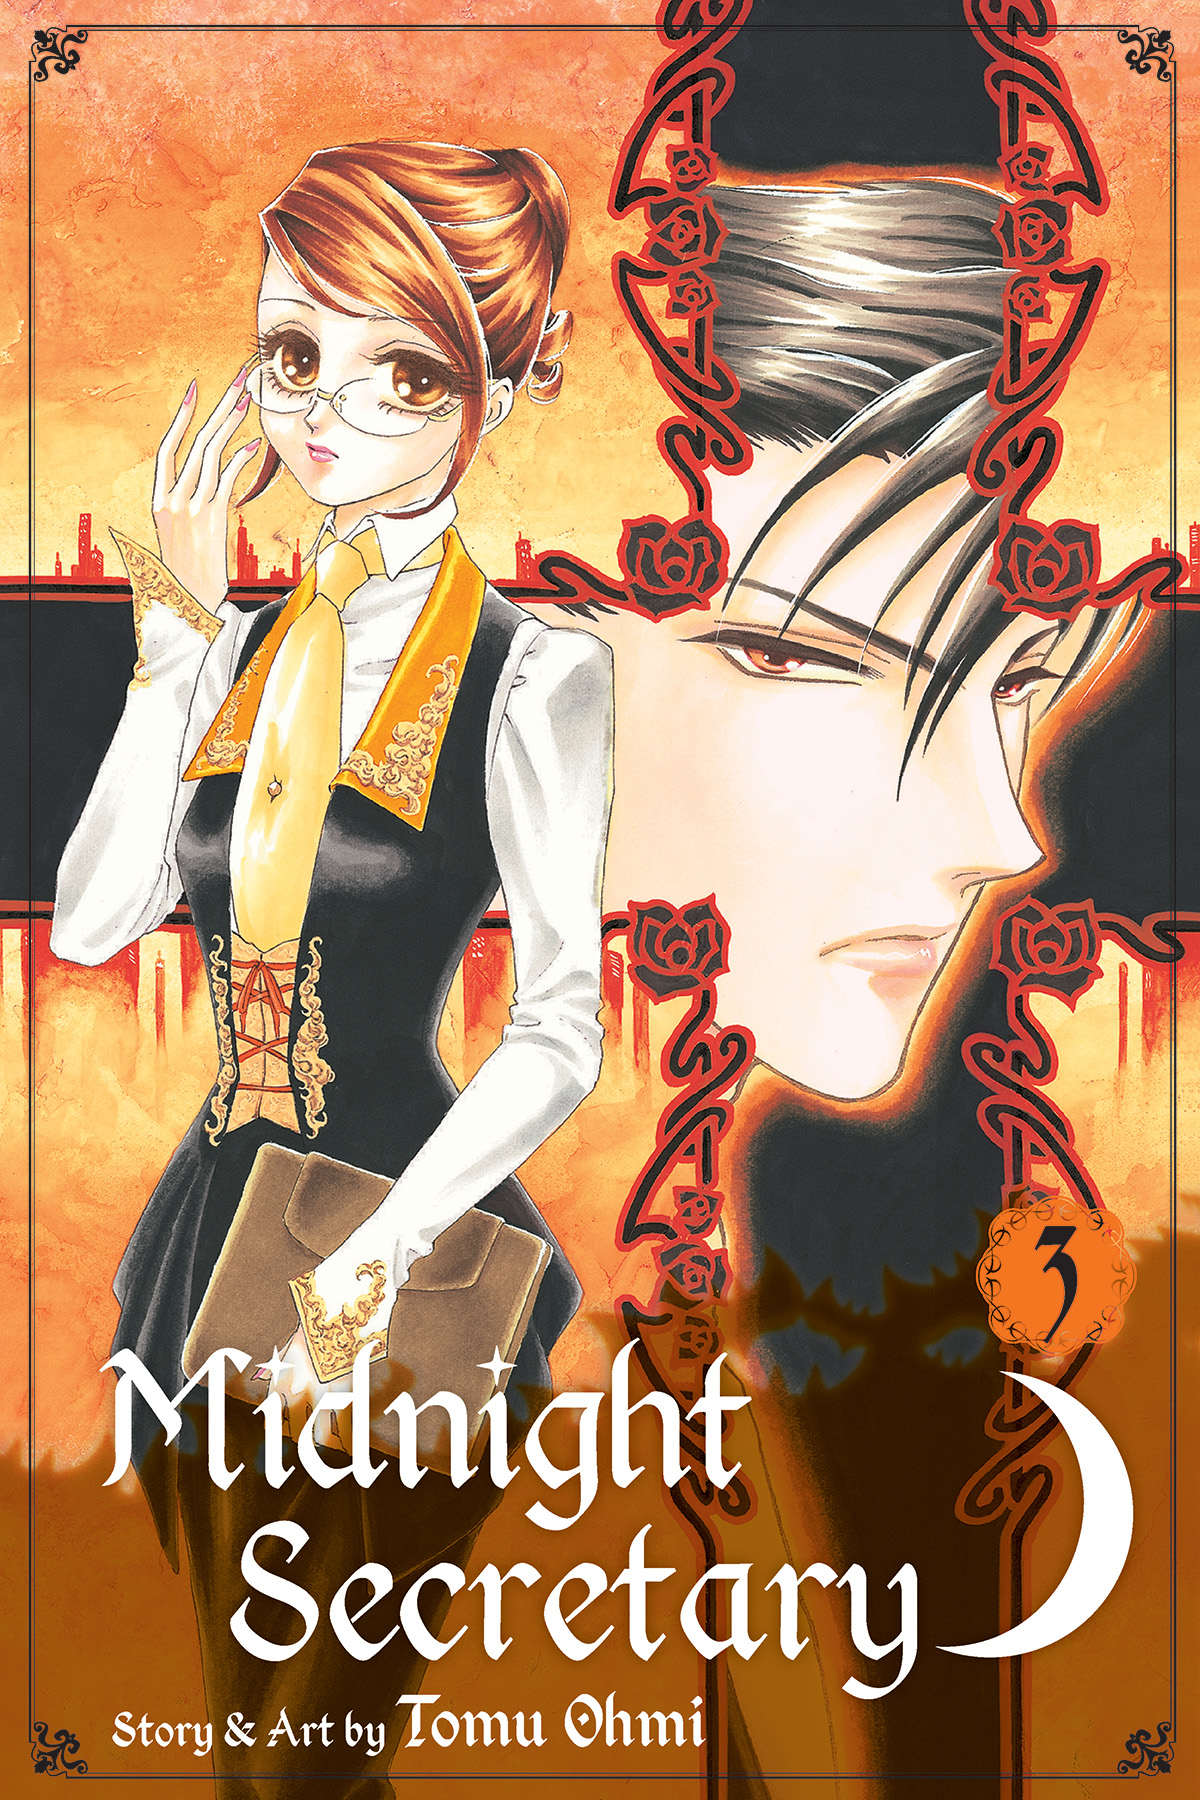 MIDNIGHT SECRETARY GN VOL 03